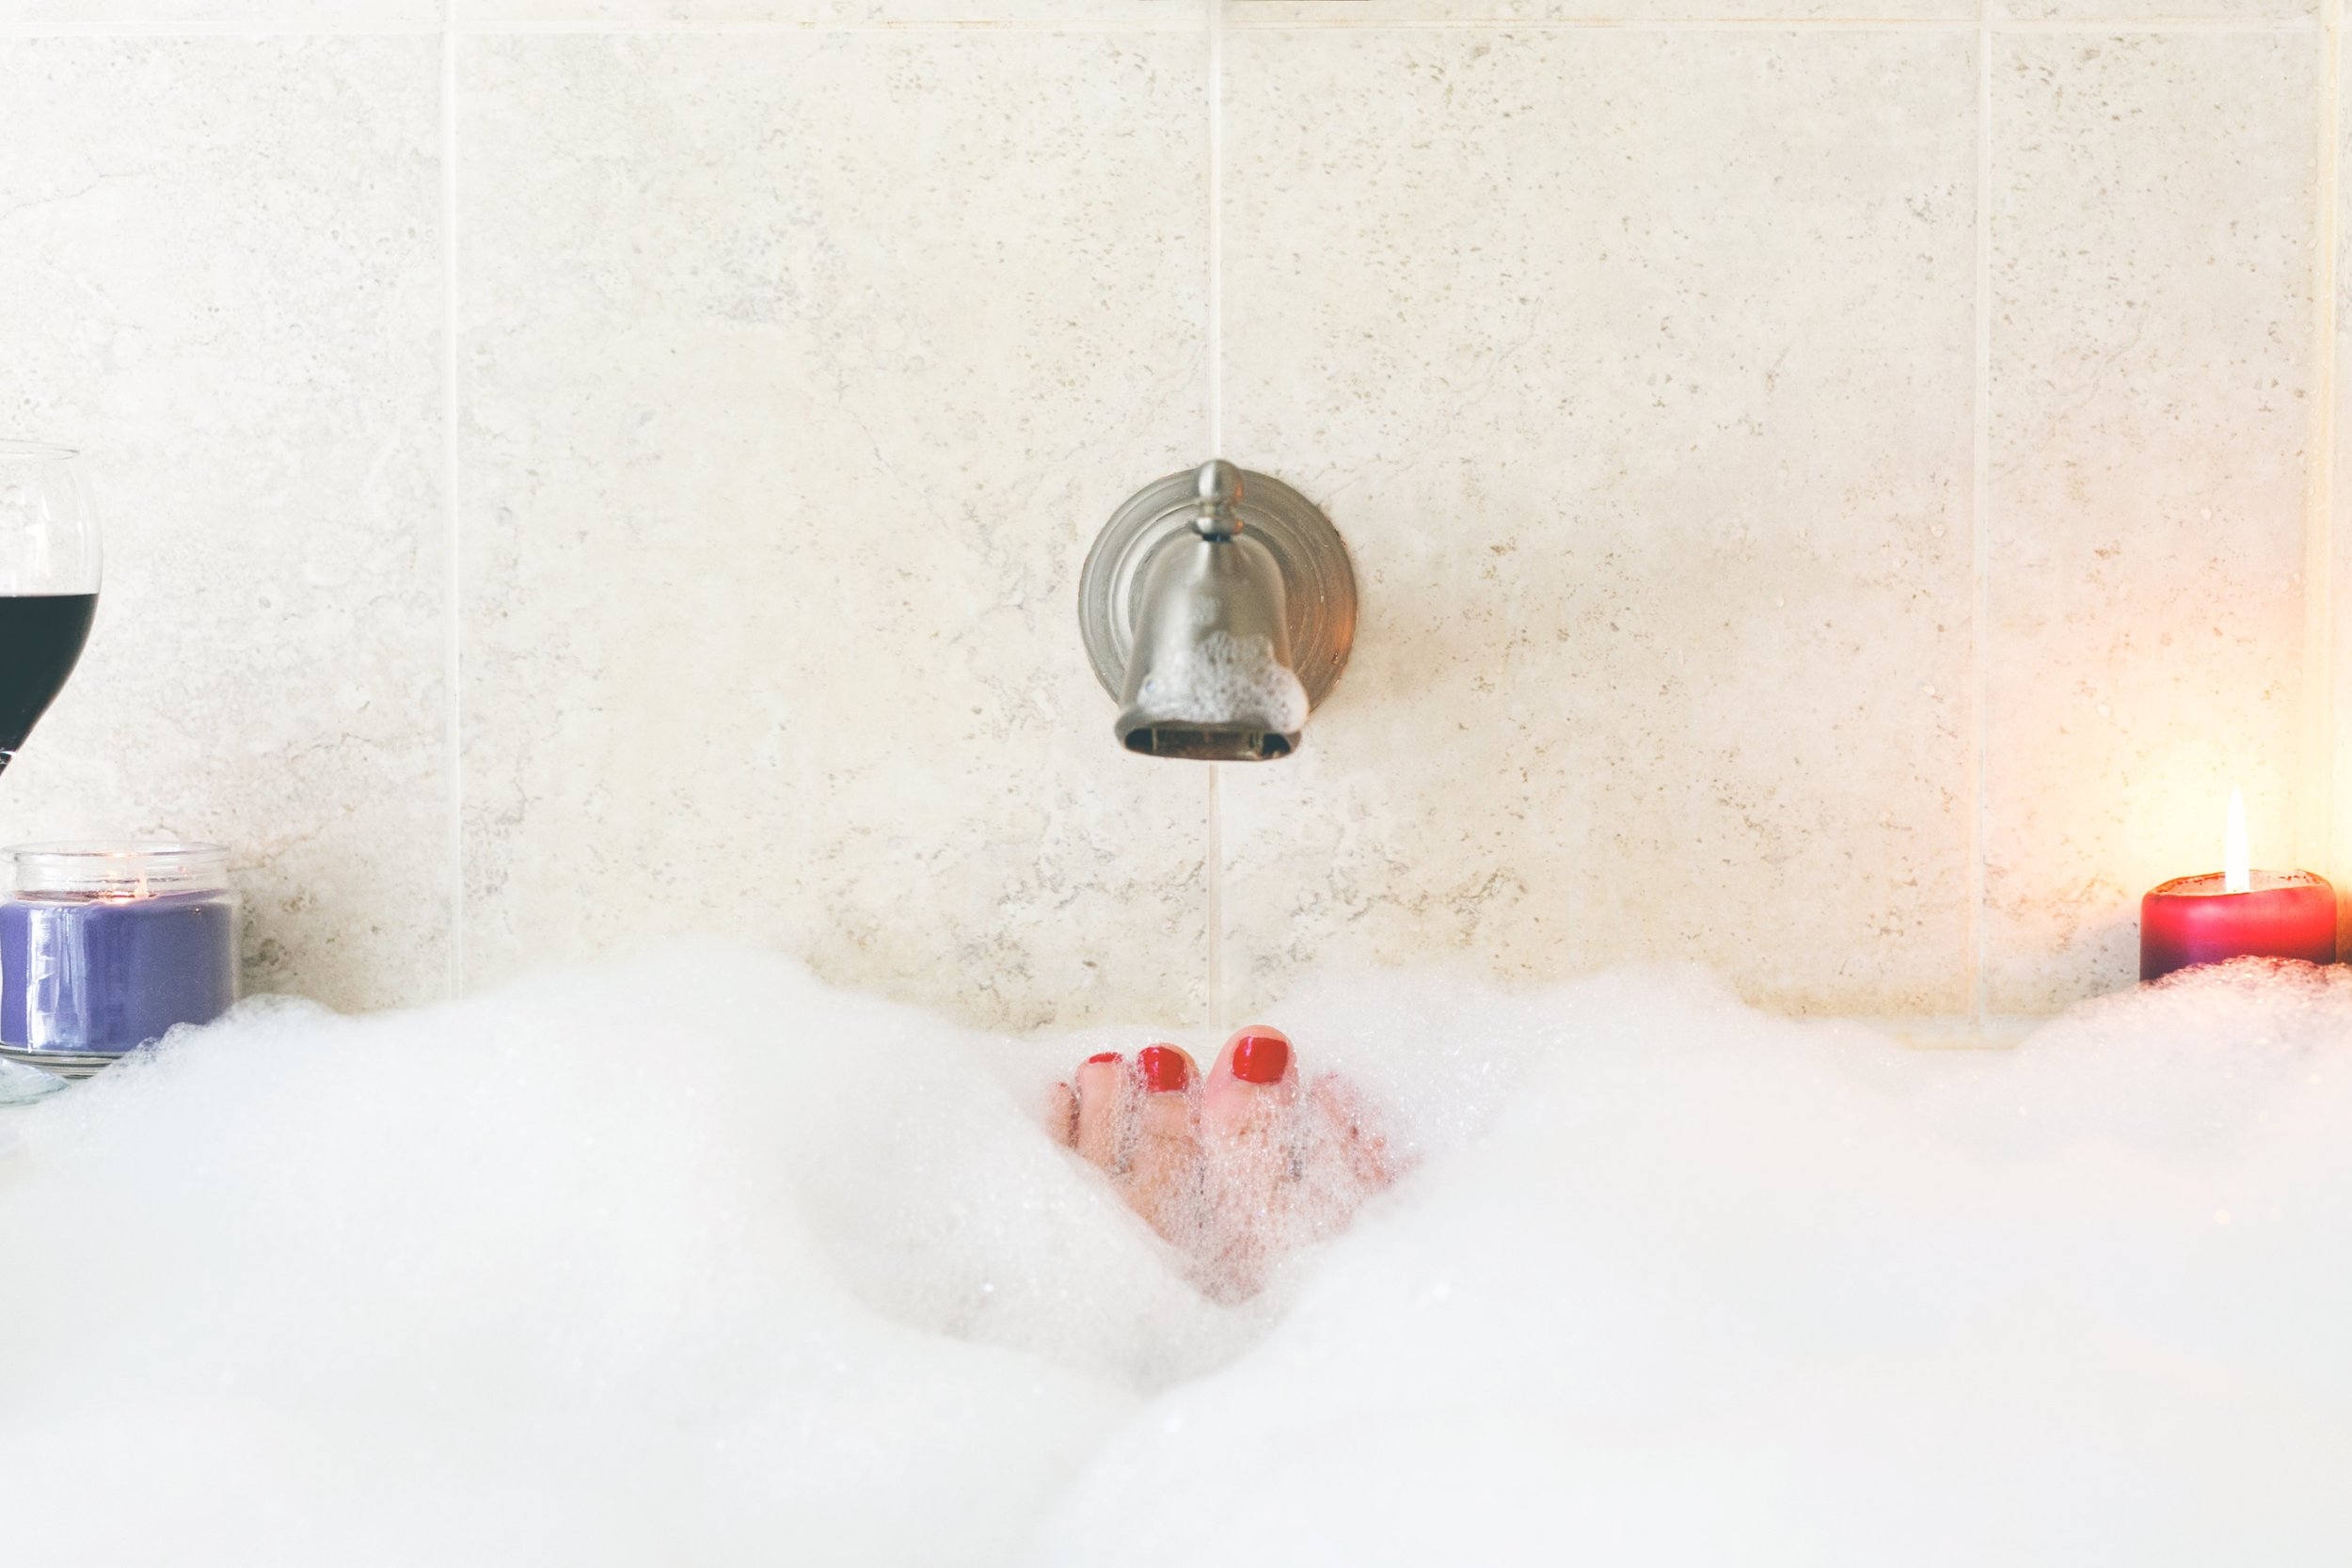 Bubble baths and other scented products are not recommended and may make vaginal dryness worse.